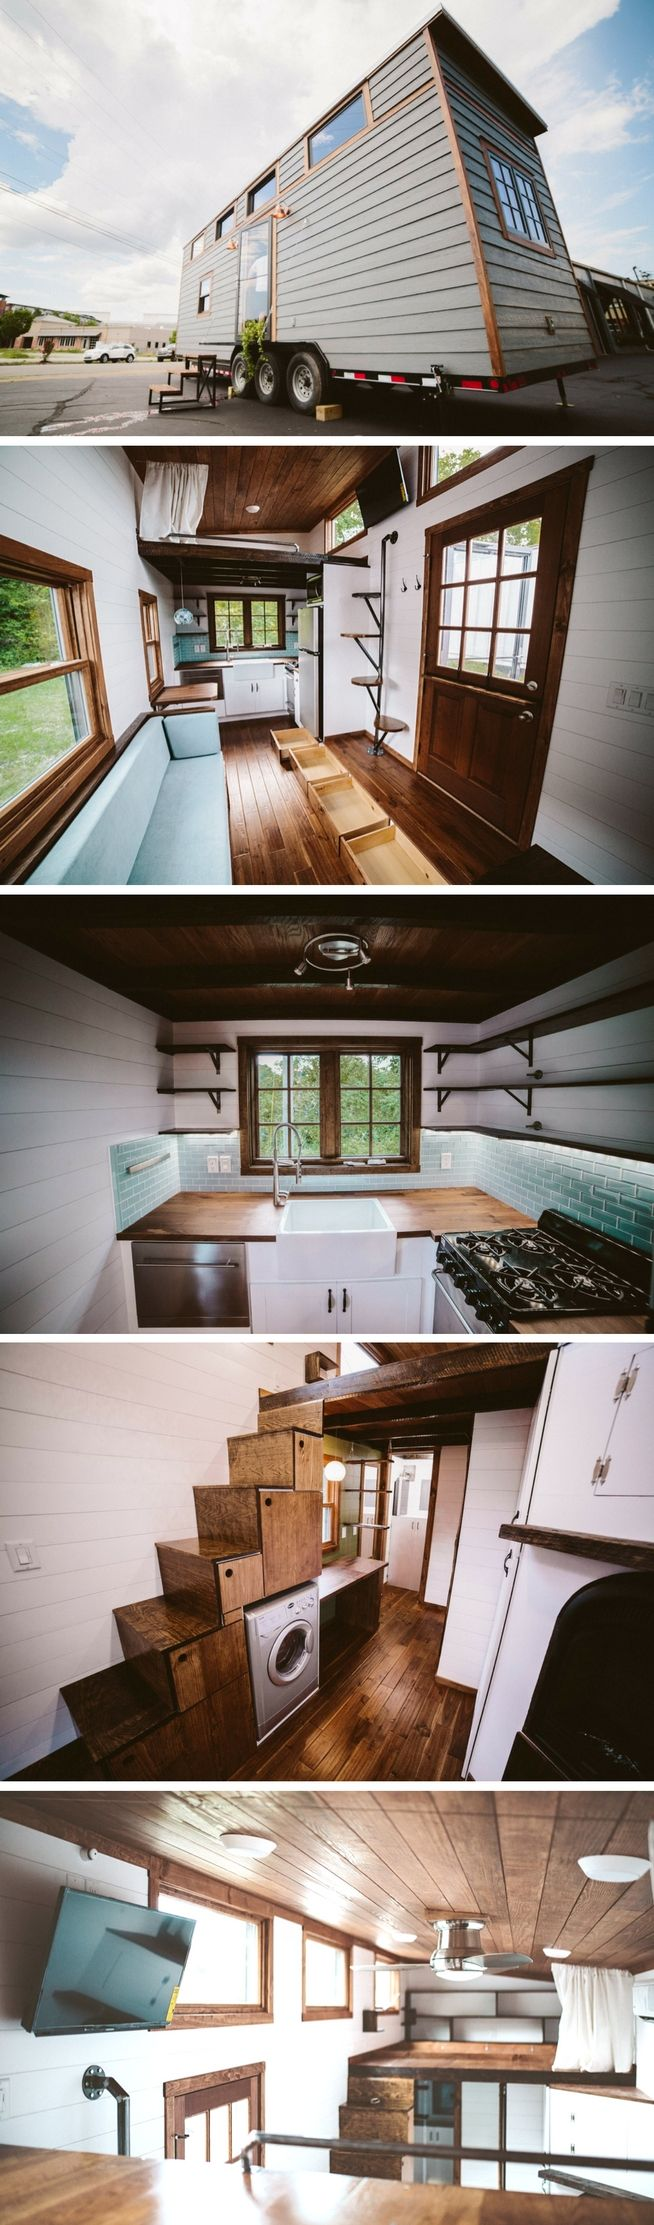 196 best tiny house on wheels images on pinterest small houses the mayflower a 399 5 sq ft tiny house on wheels with a home office